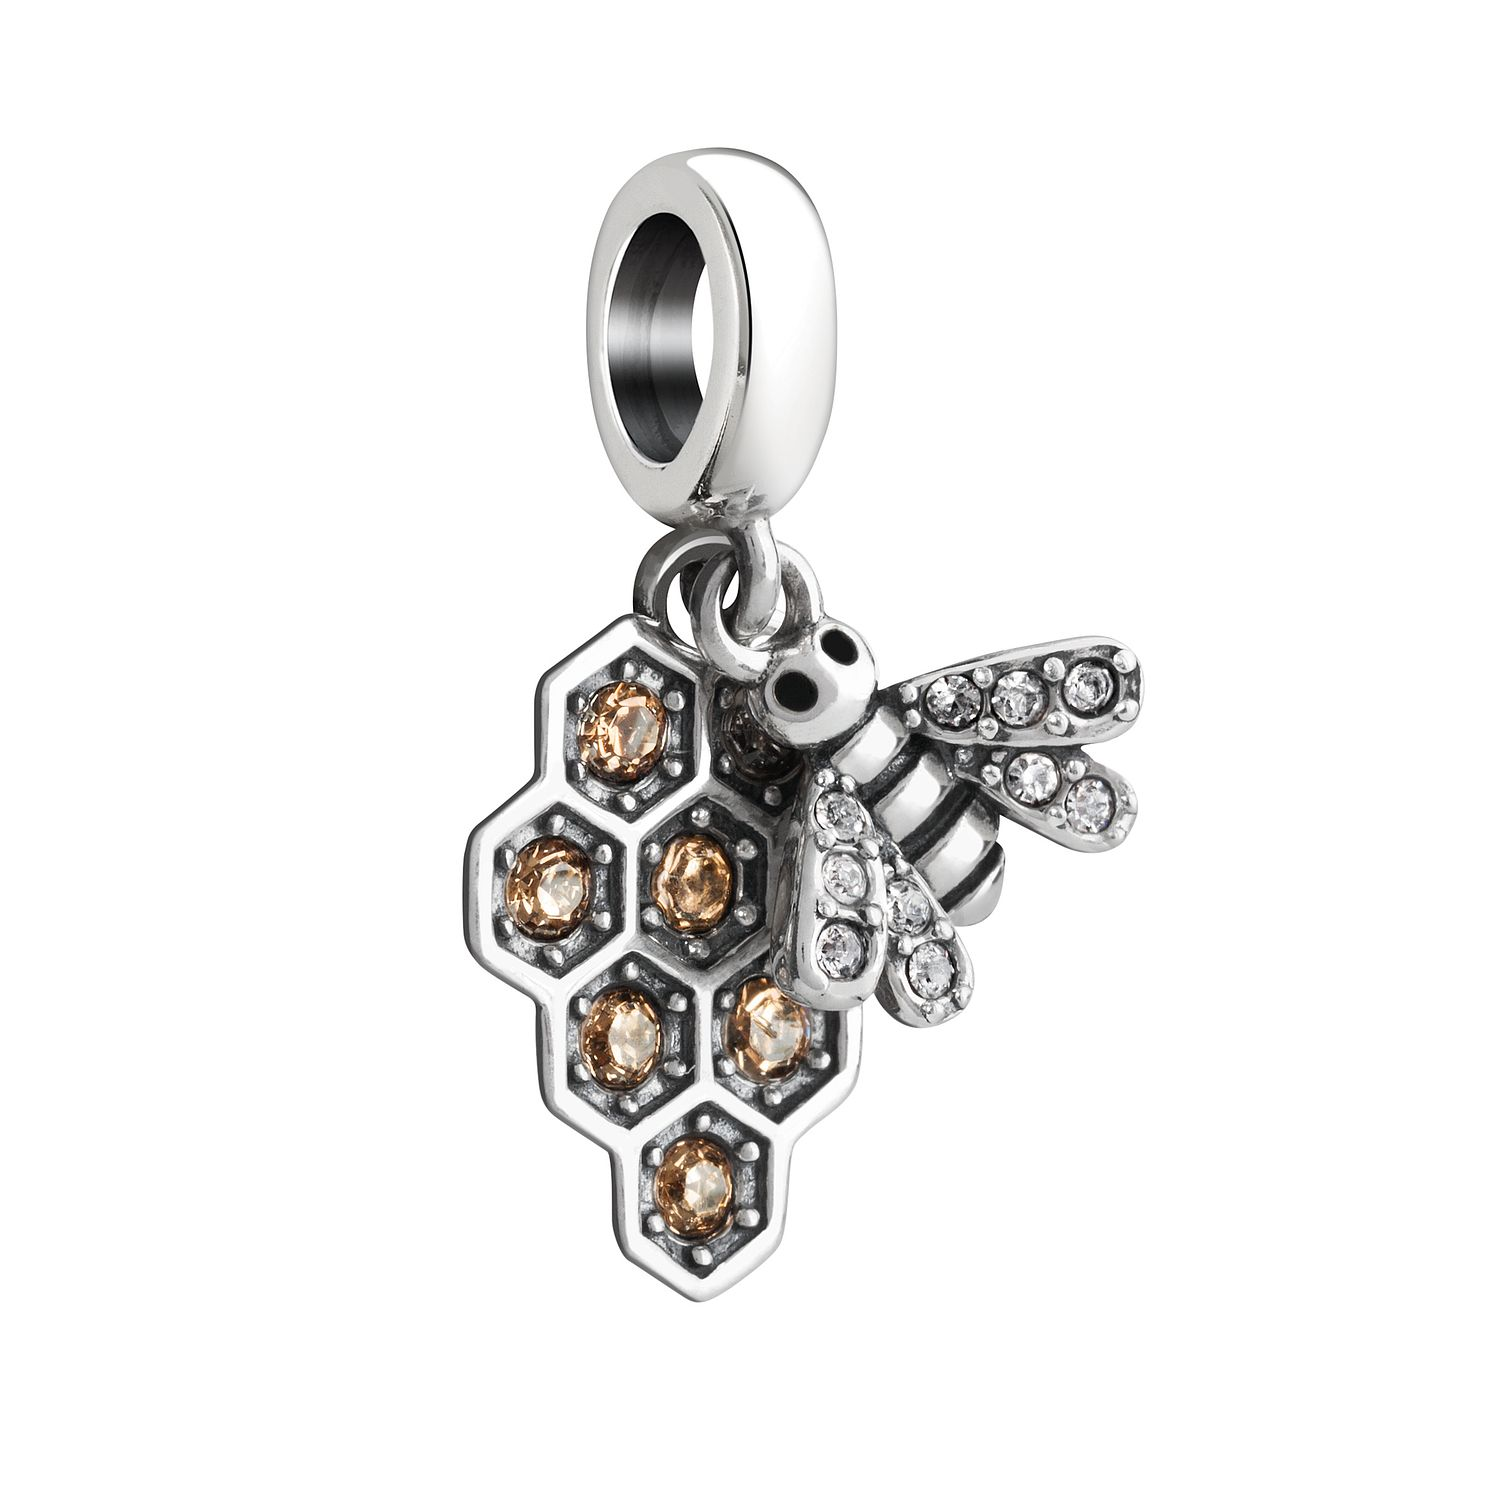 Chamilia Silver & Swarosvki Crystal My Honeybee Charm - Product number 2876302